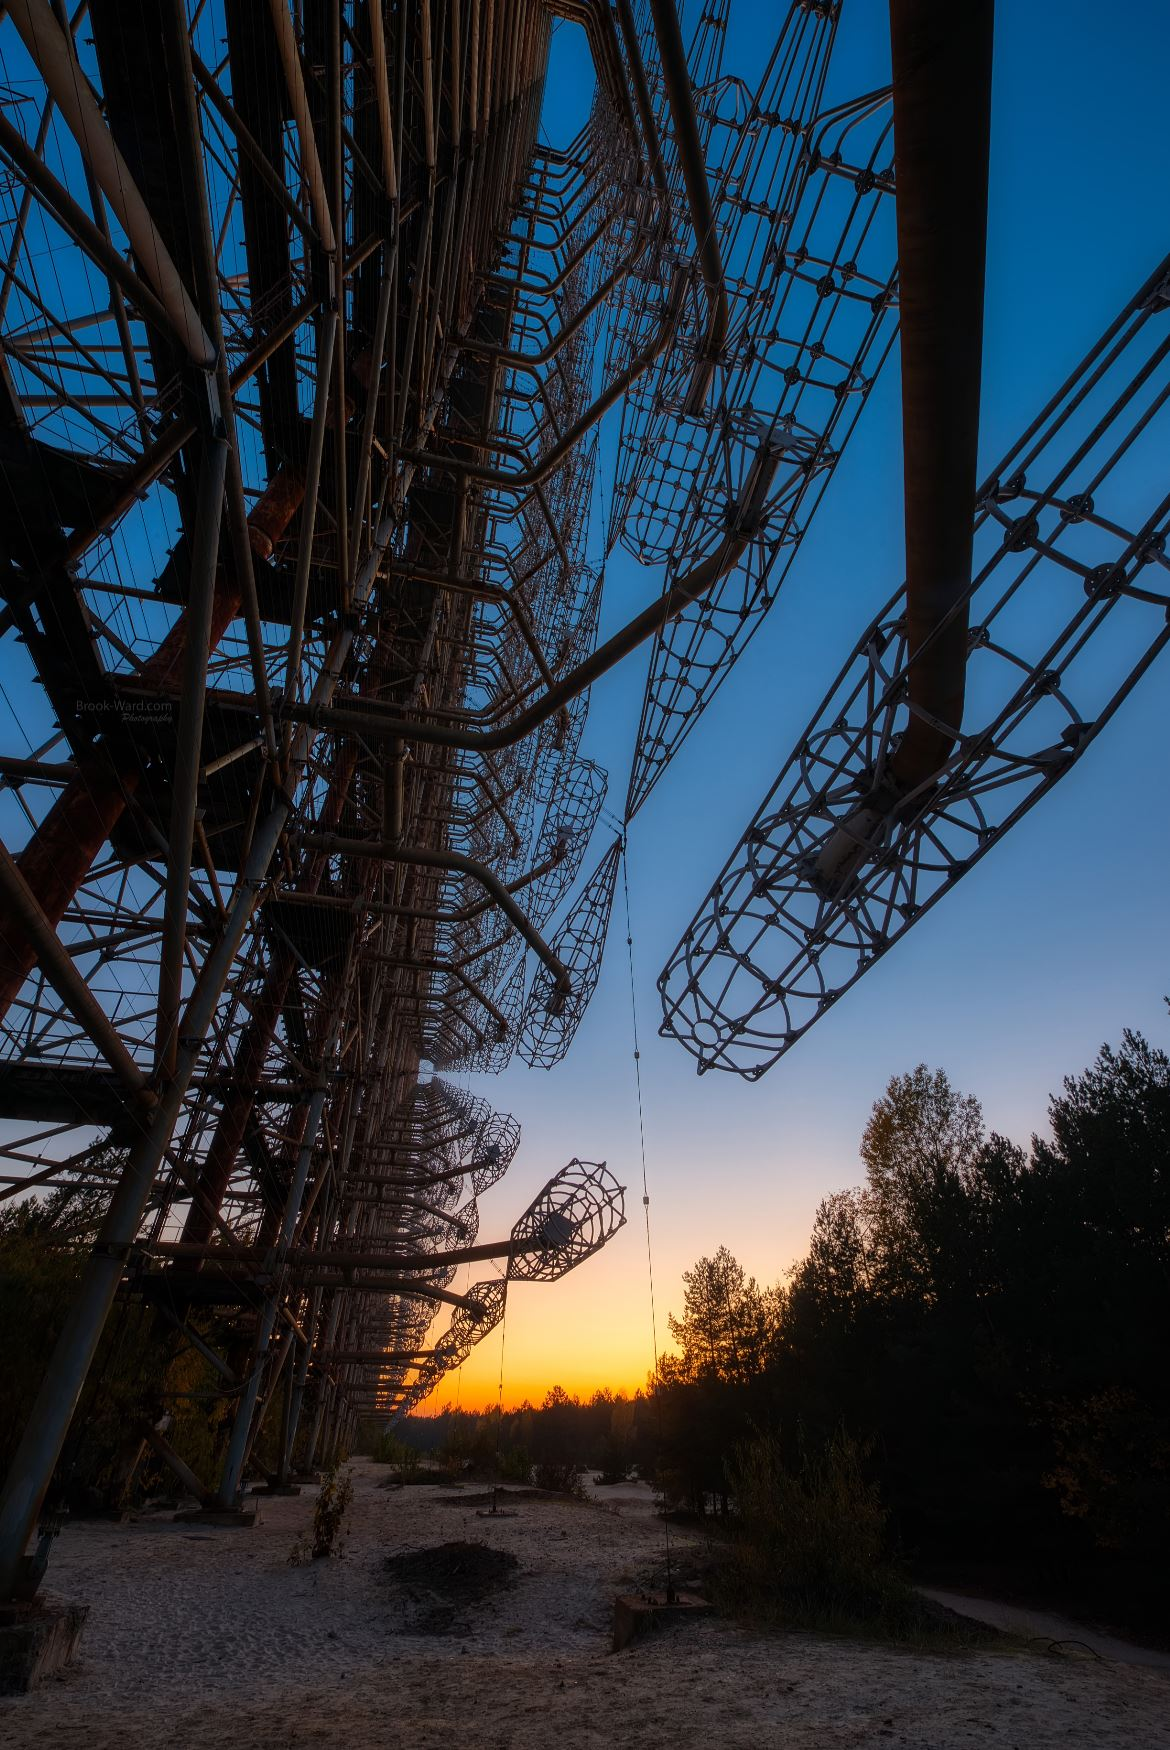 DUGA - Russian Woodpecker